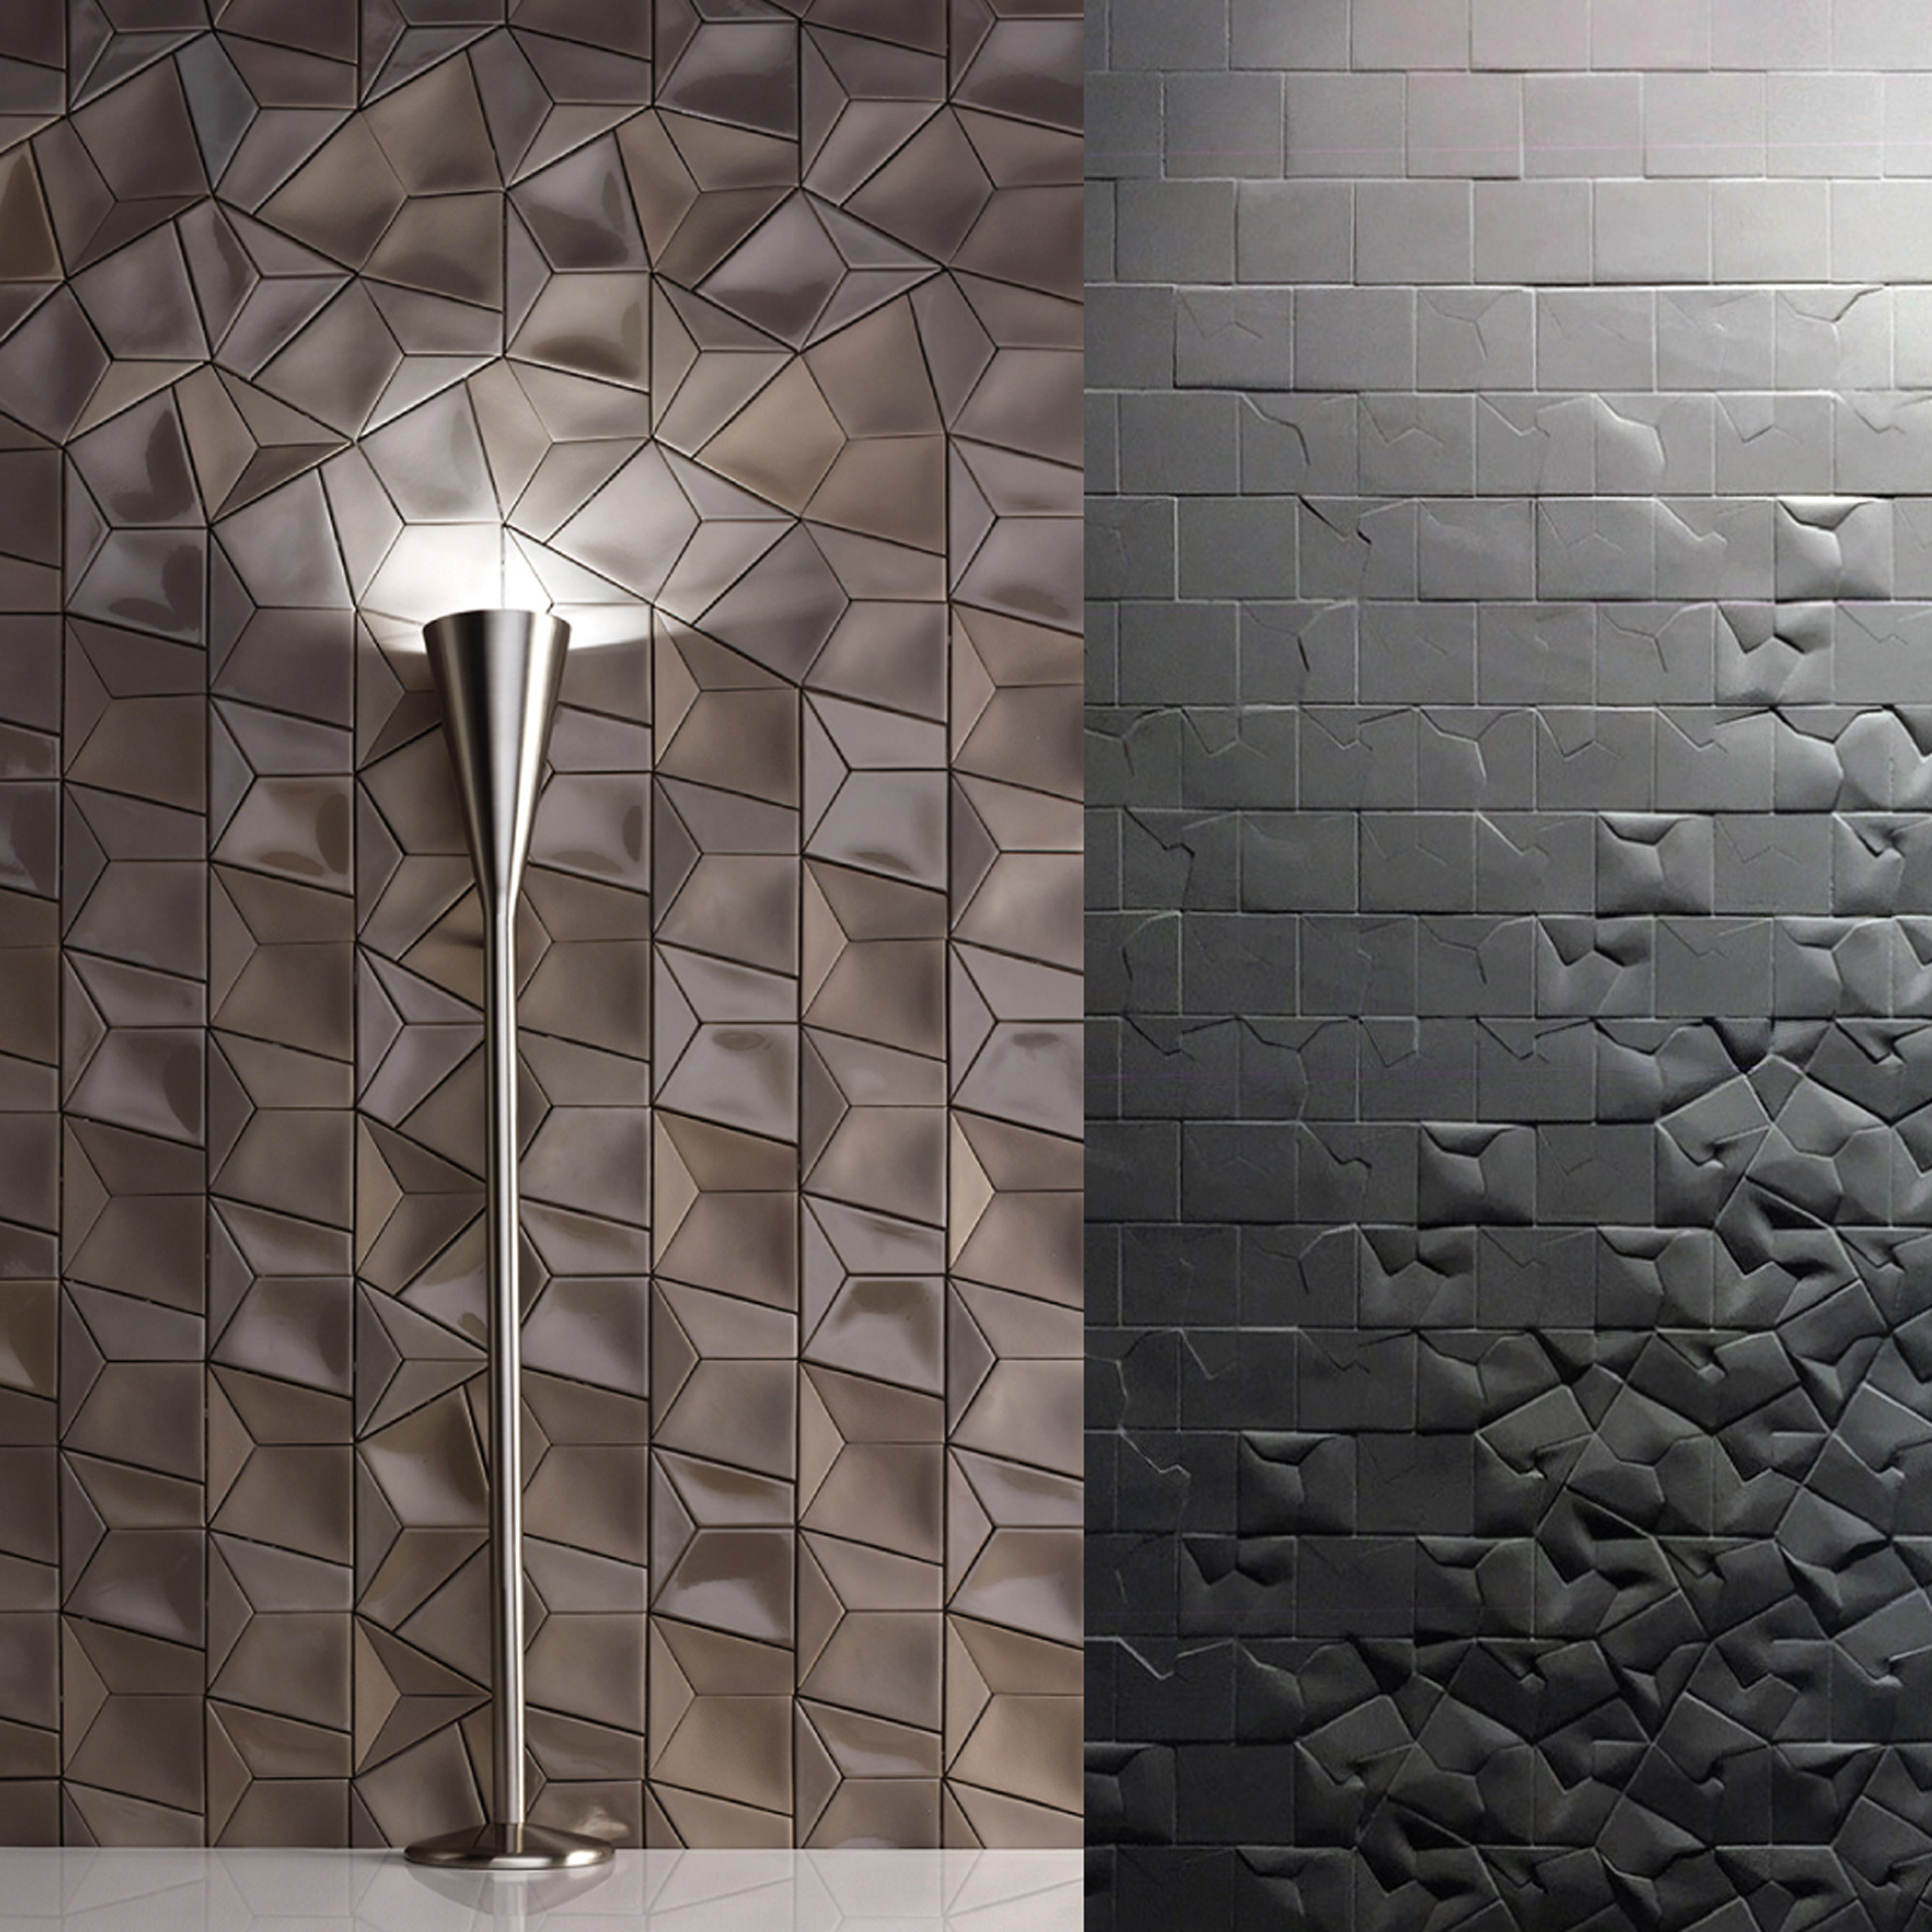 Variation of textured tiles in brown and dark grey